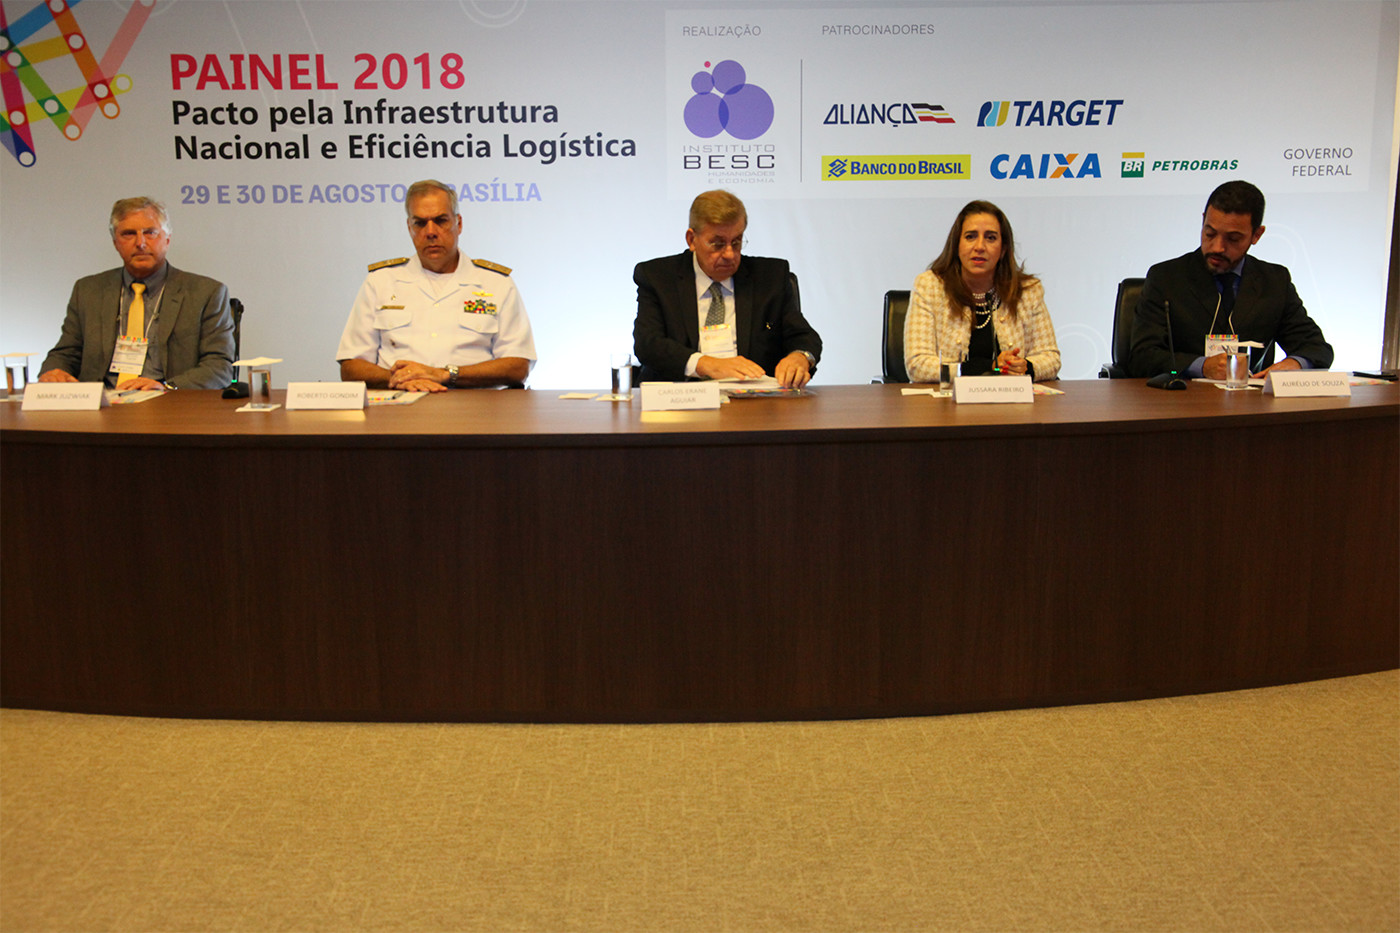 painel2018-14